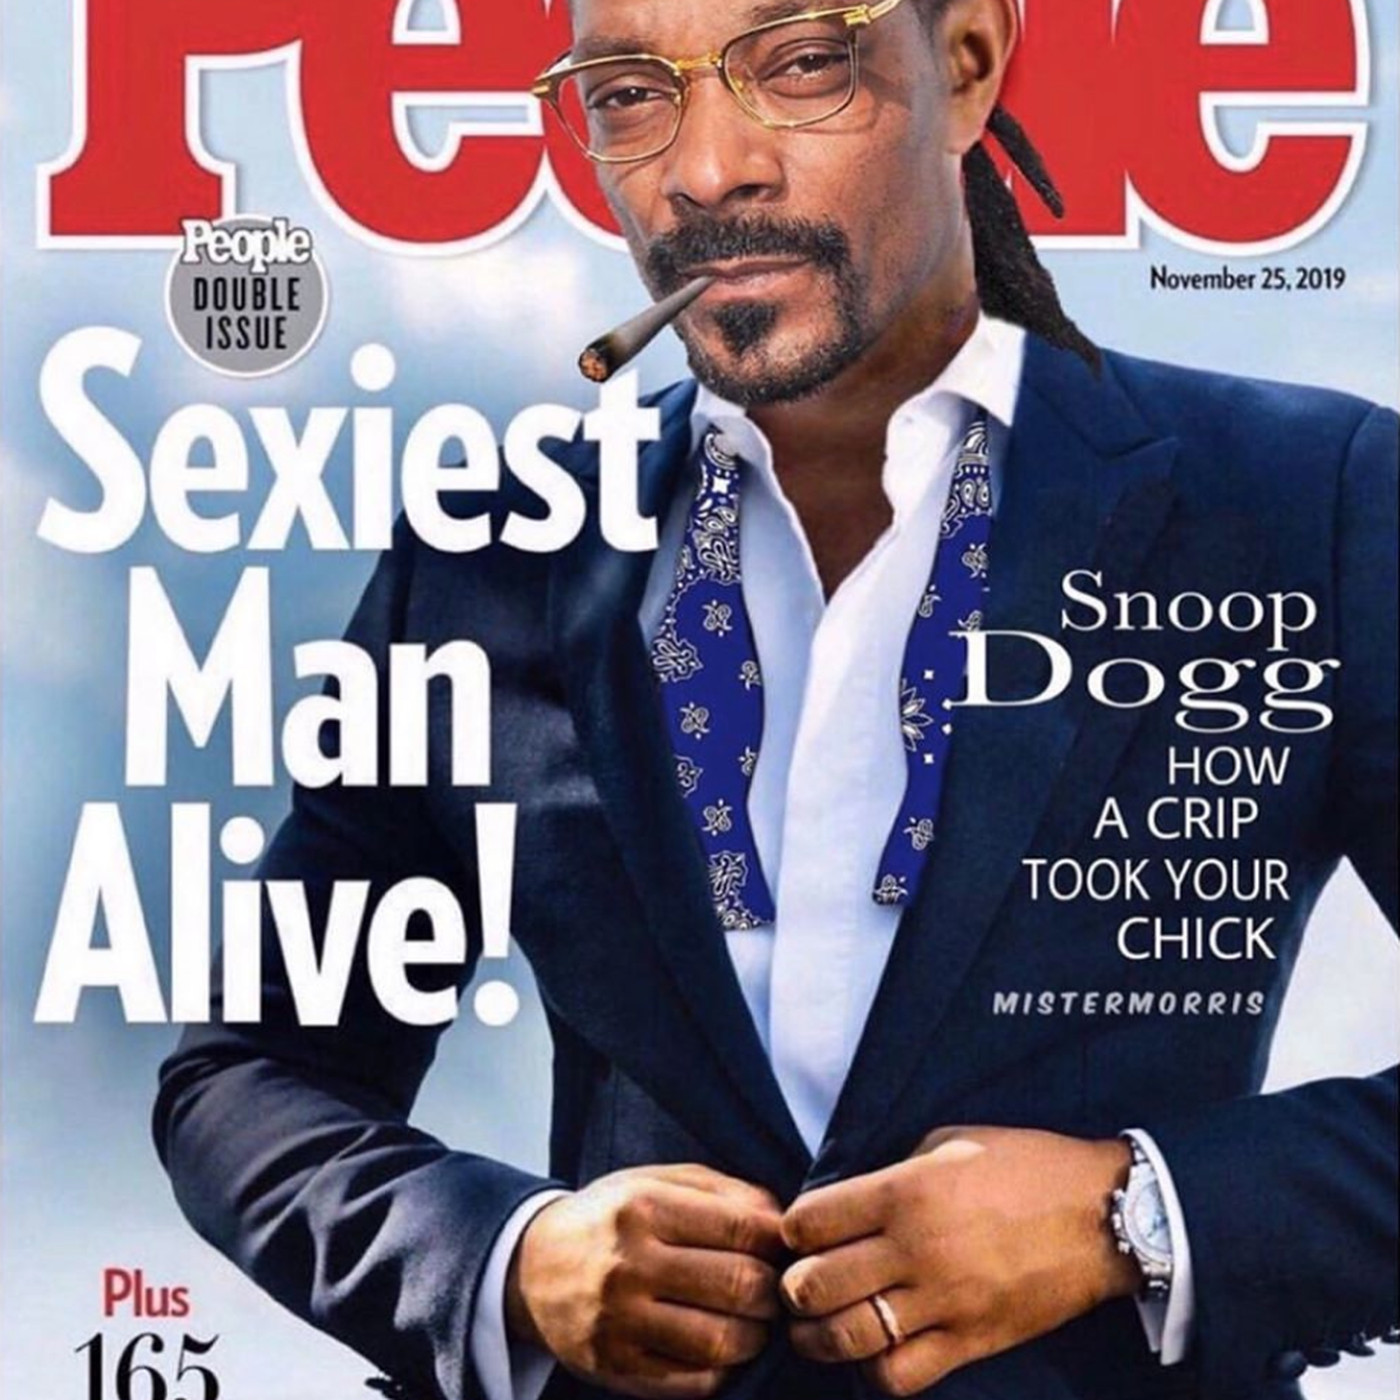 Snoop Dogg Basically Just Dubbed Himself Sexiest Man Alive And I Support It Funny Or Die